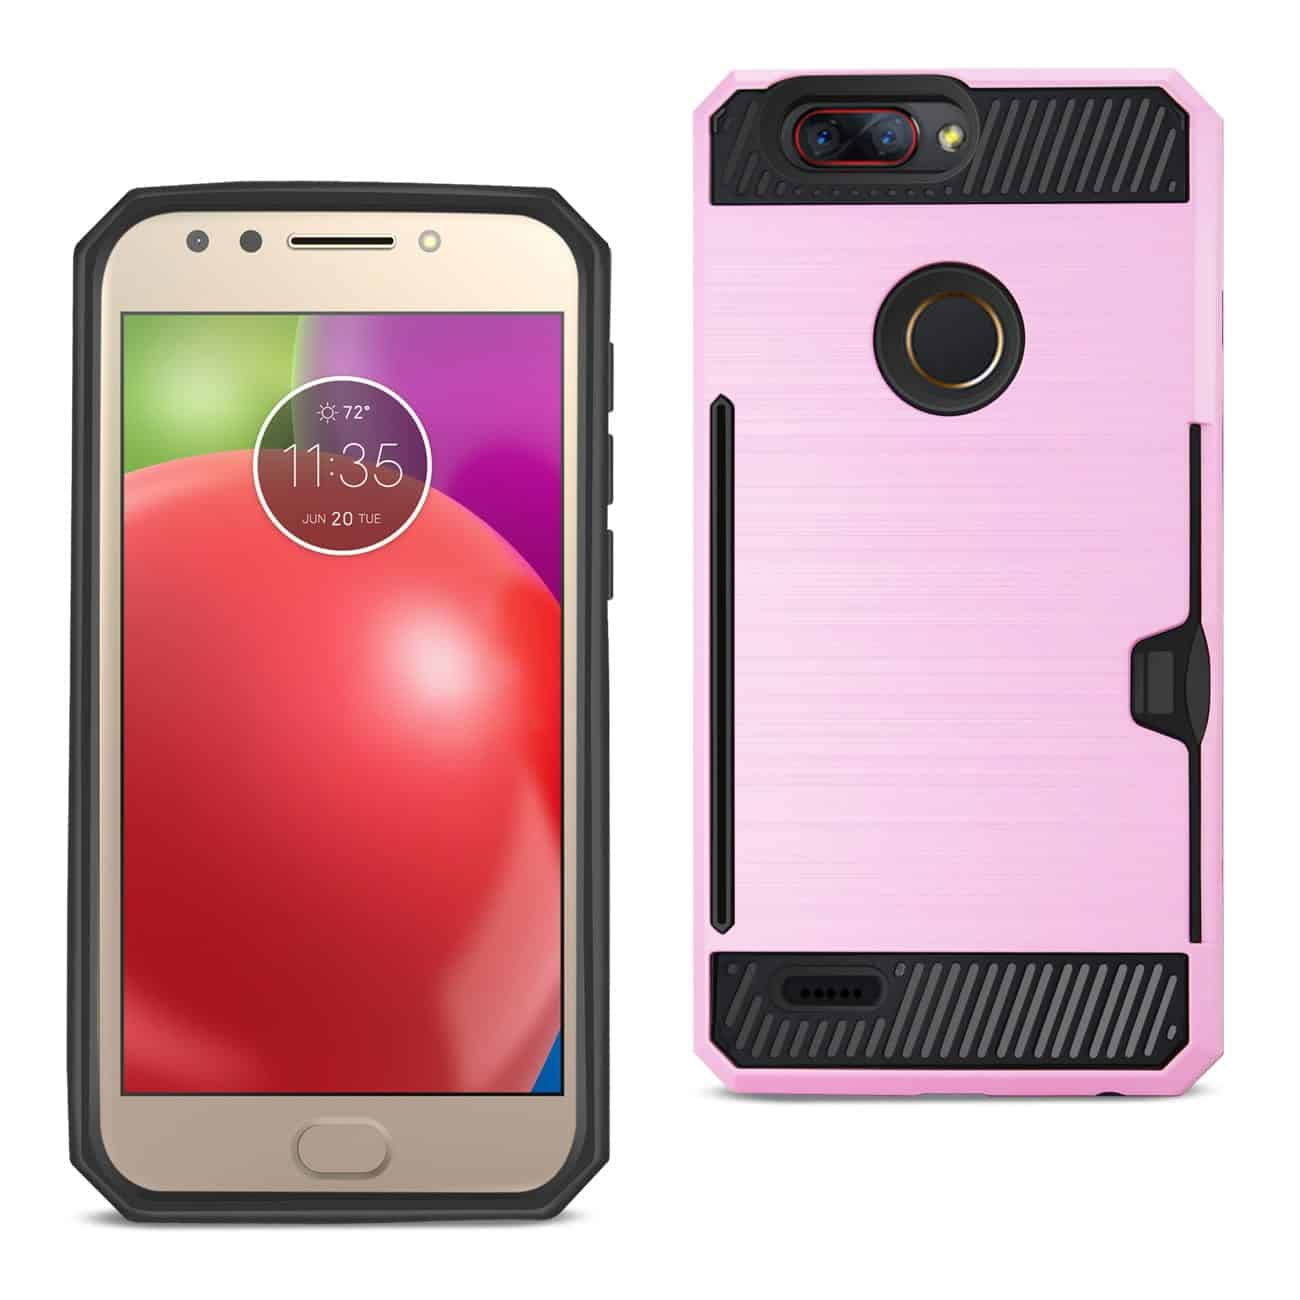 Zte Blade Z Max/Z982/Zte Sequoia Slim Armor Hybrid Case With Card Holder In Pink